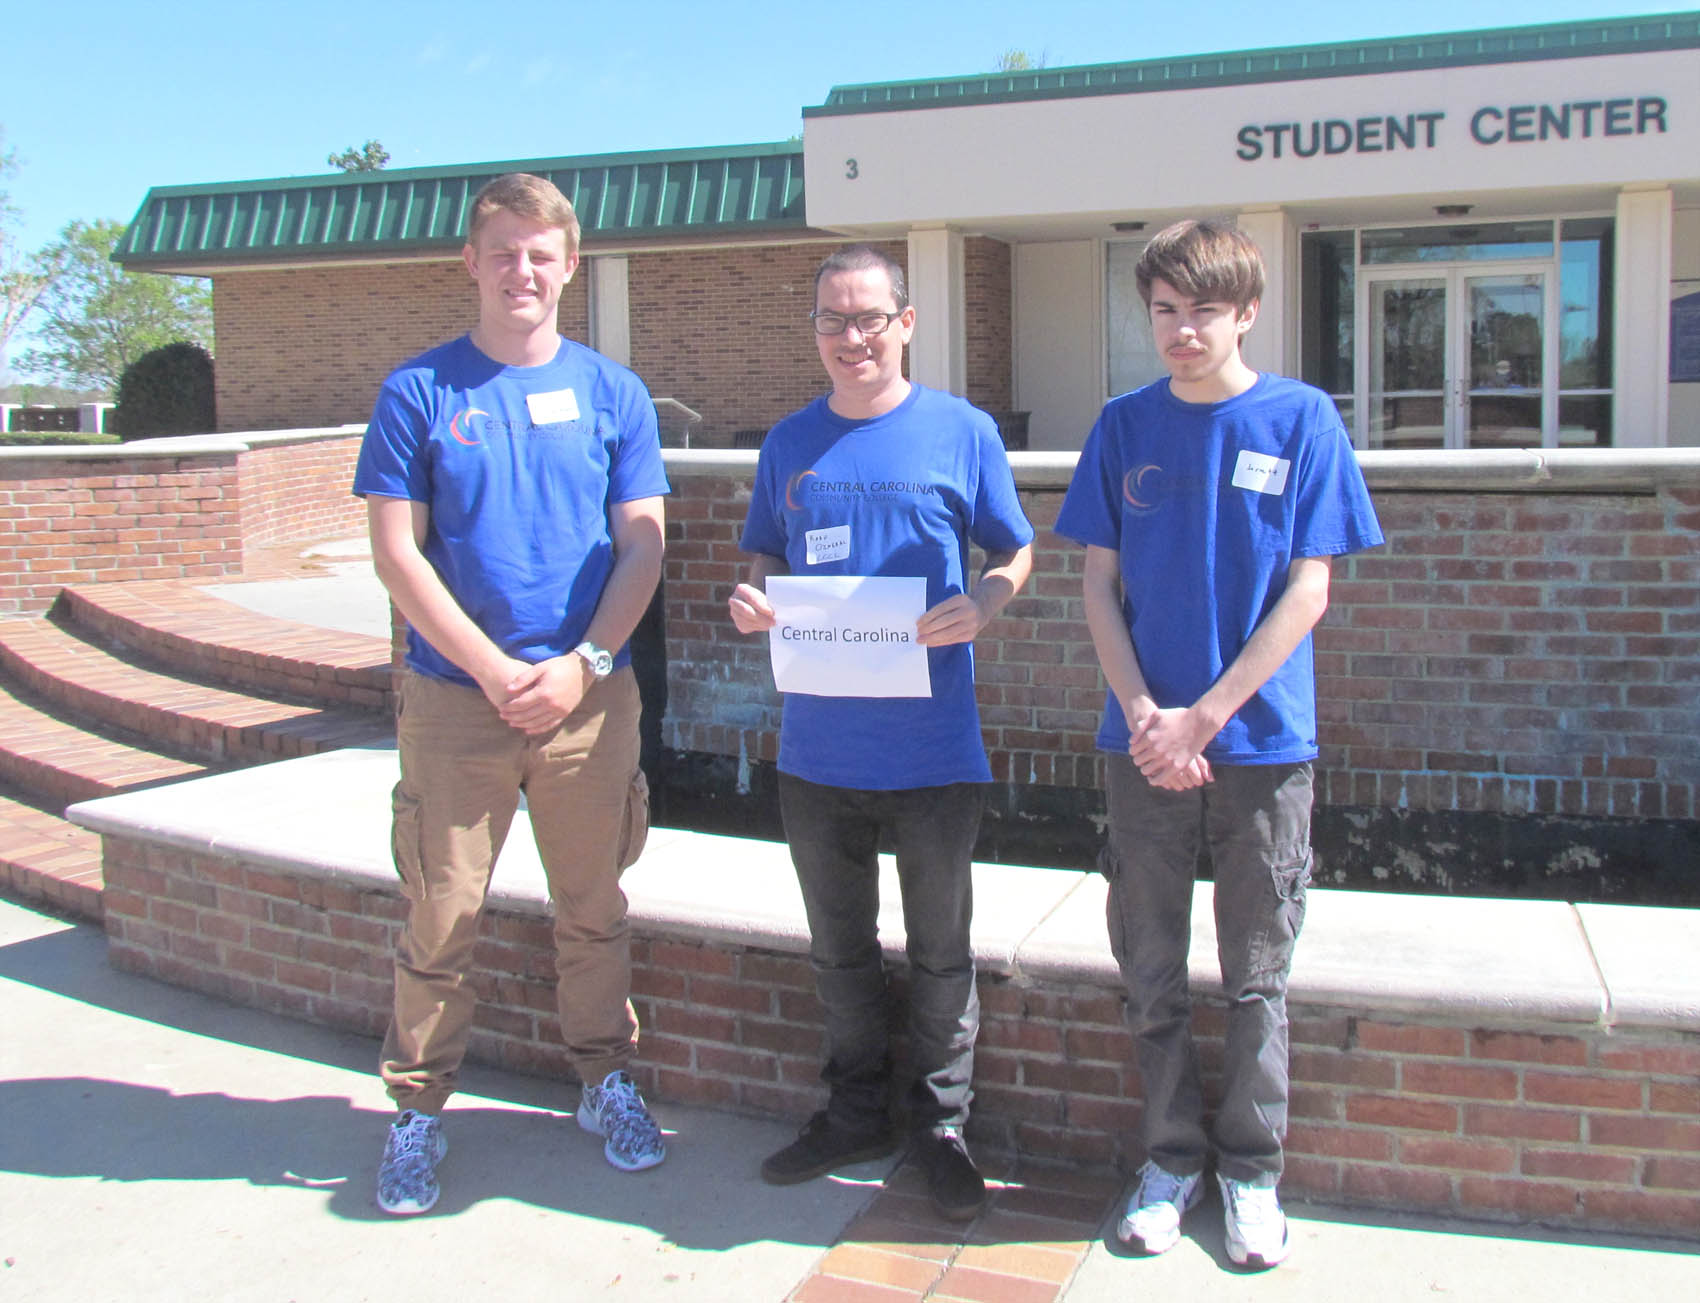 Read the full story, Two CCCC students compete in math tournament